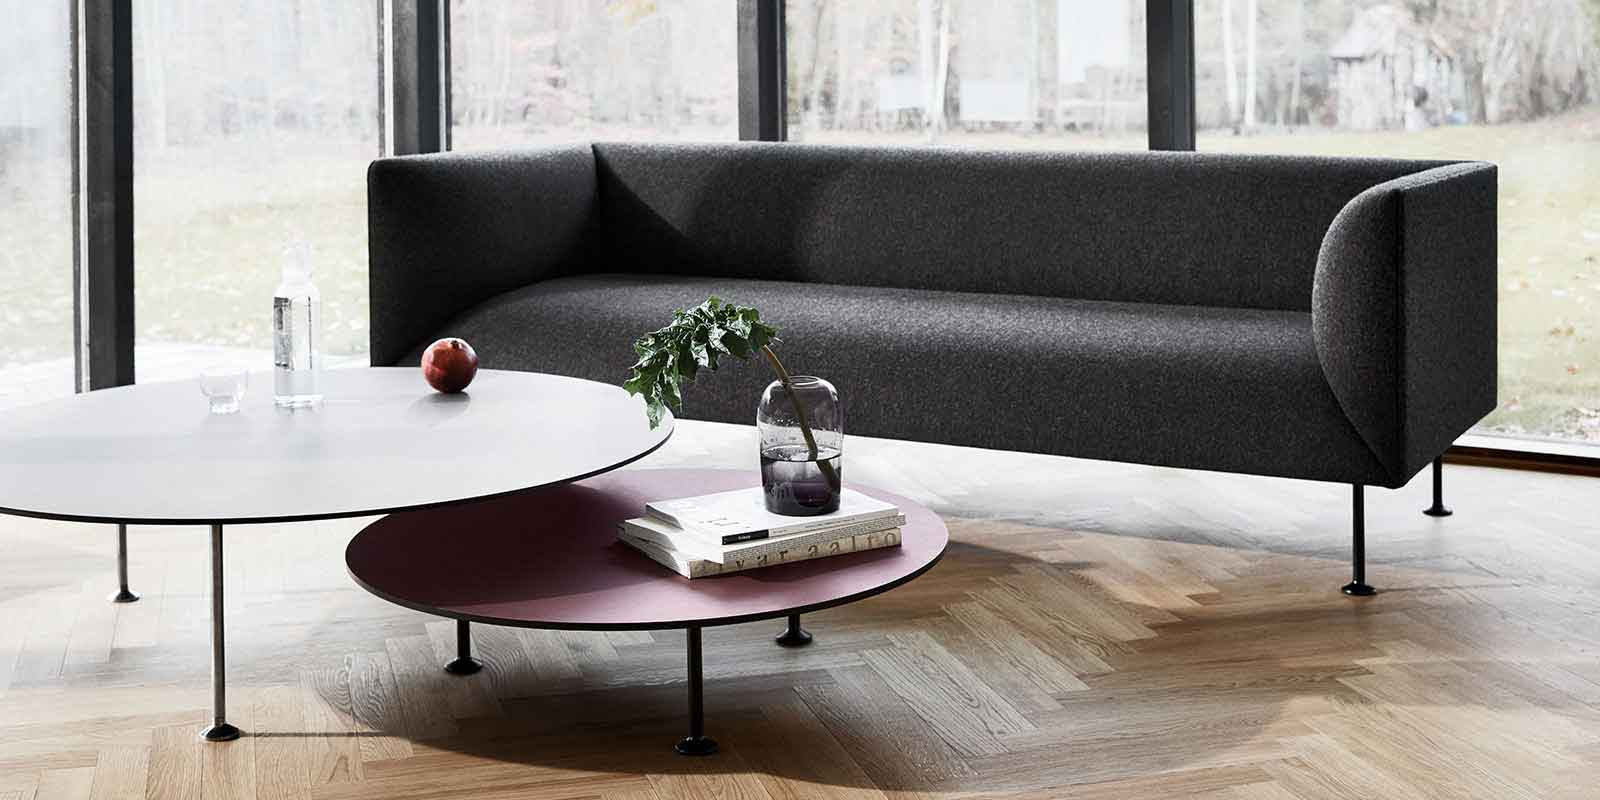 Scandinavian homewares furniture online store sydney australia luumo design Home furniture packages australia